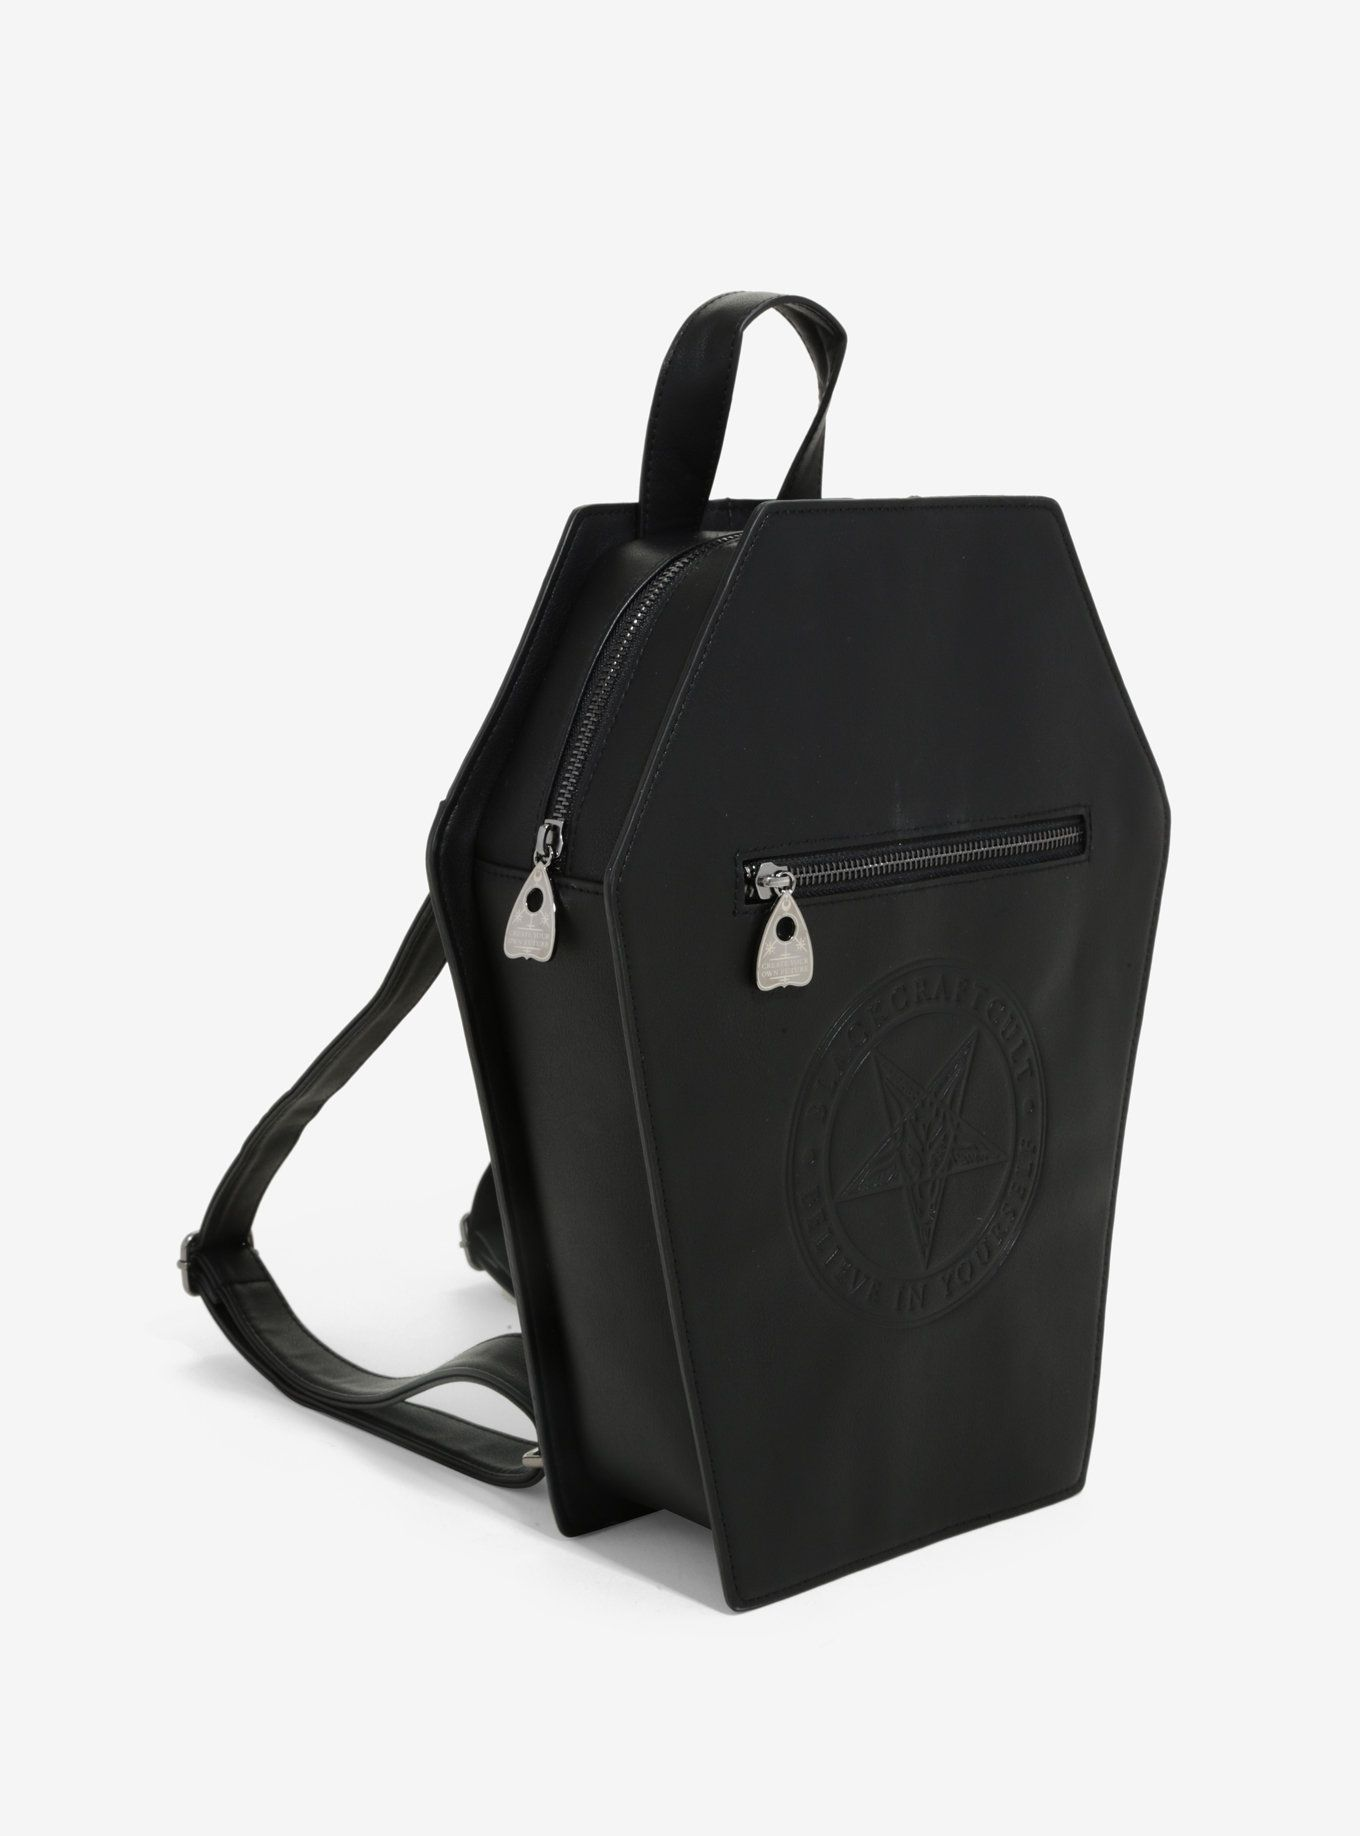 BlackCraft Coffin Mini Backpack Hot Topic Exclusive  d2c93d2cbc33b